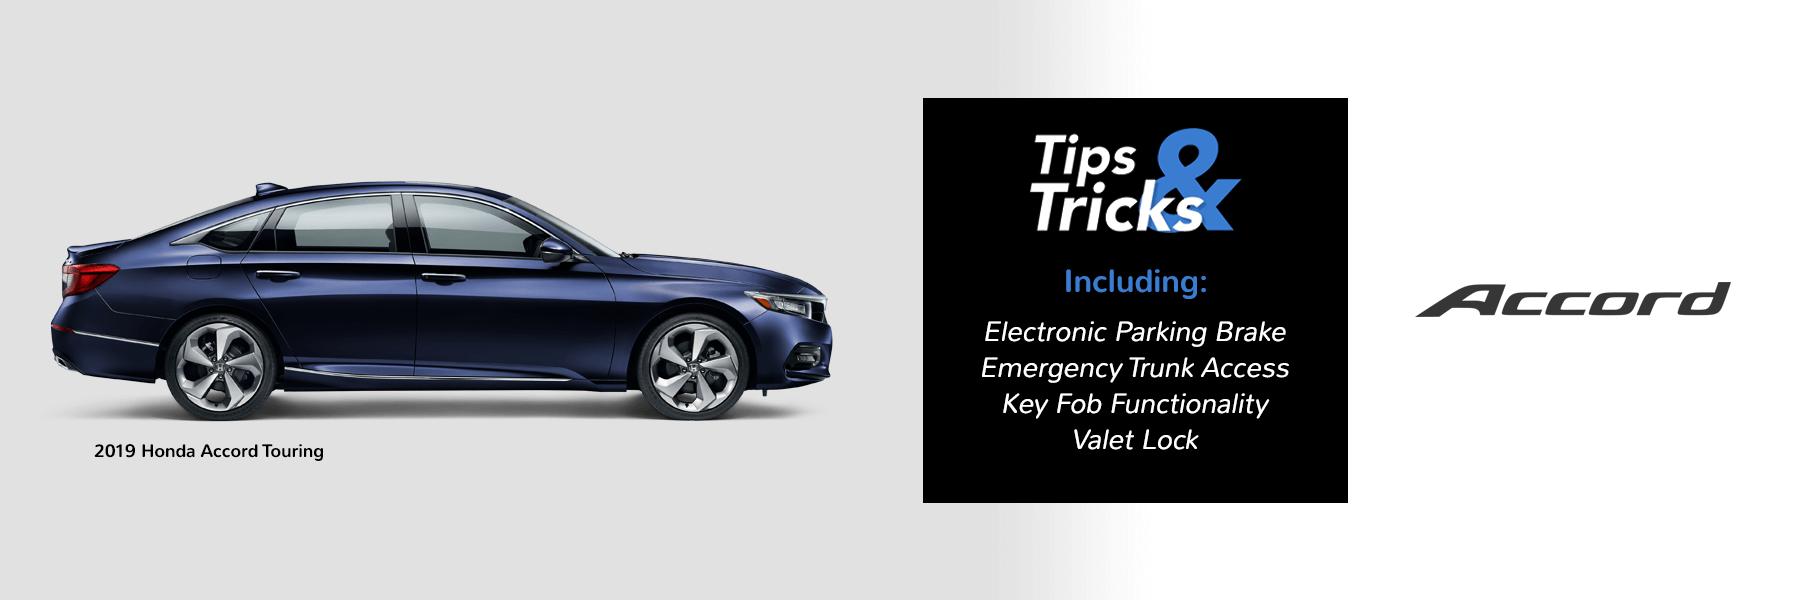 Honda Tips and Tricks 2019 Accord Slider